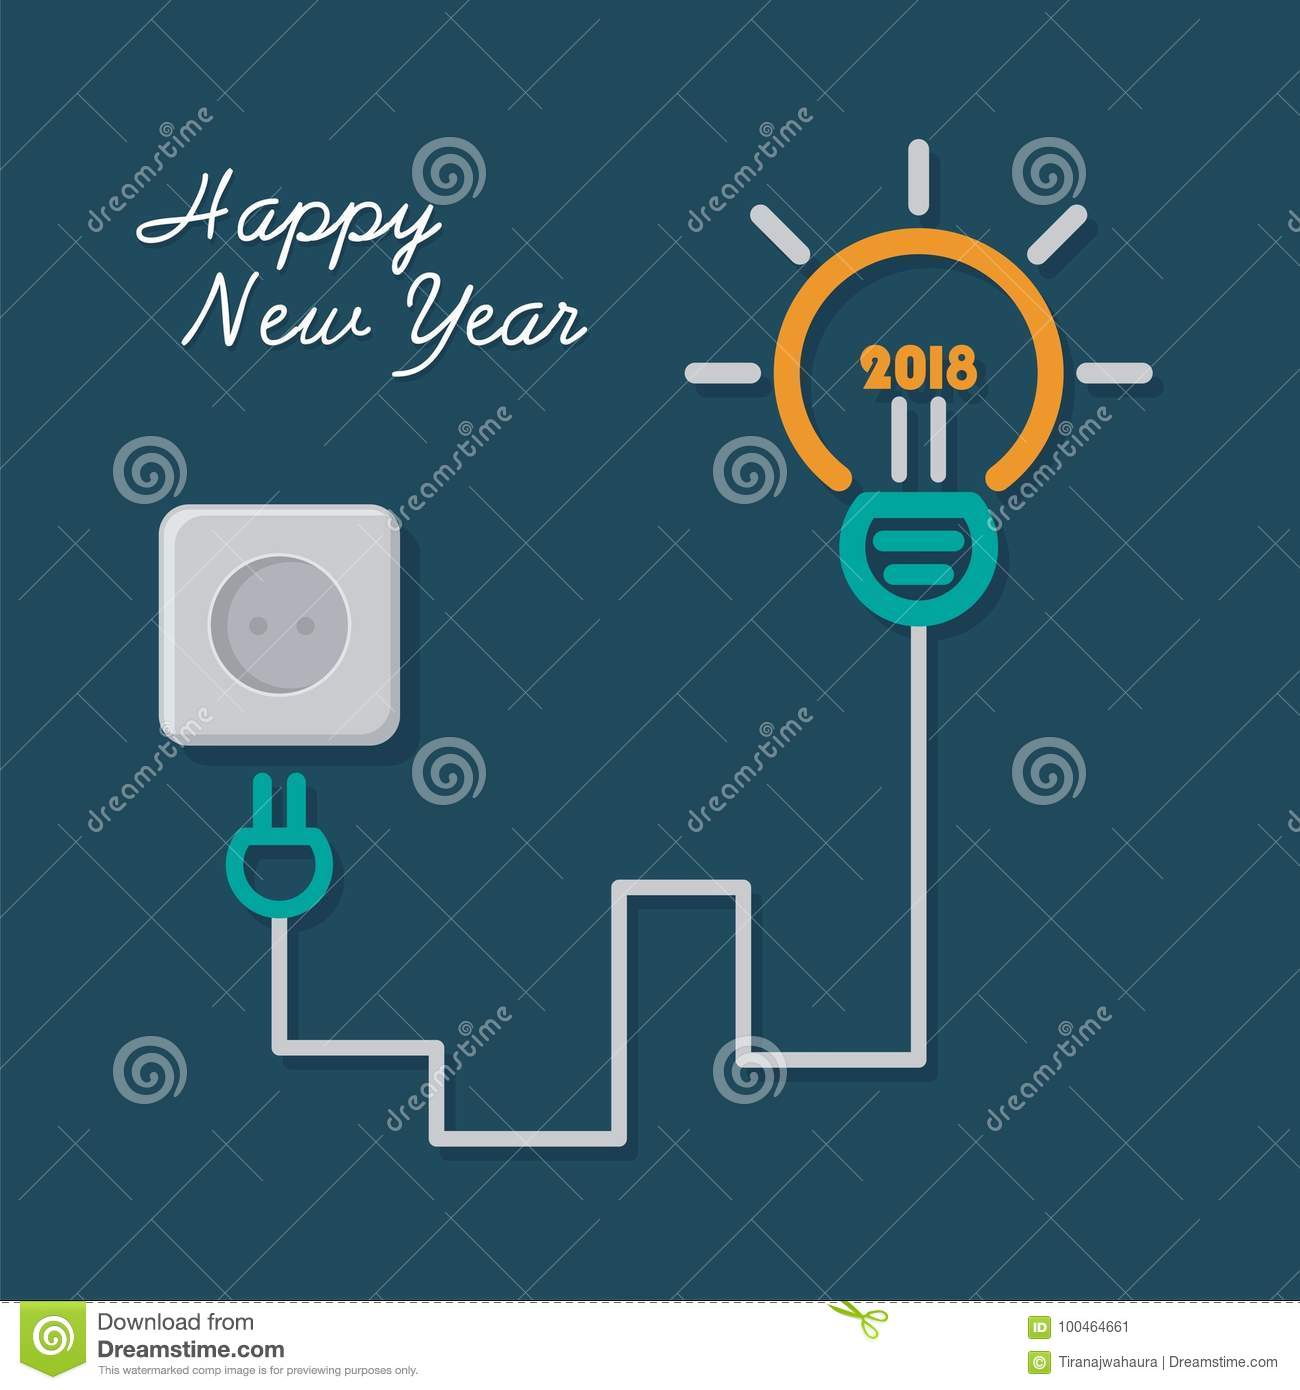 happy new year 2018 with light bulb illustration design